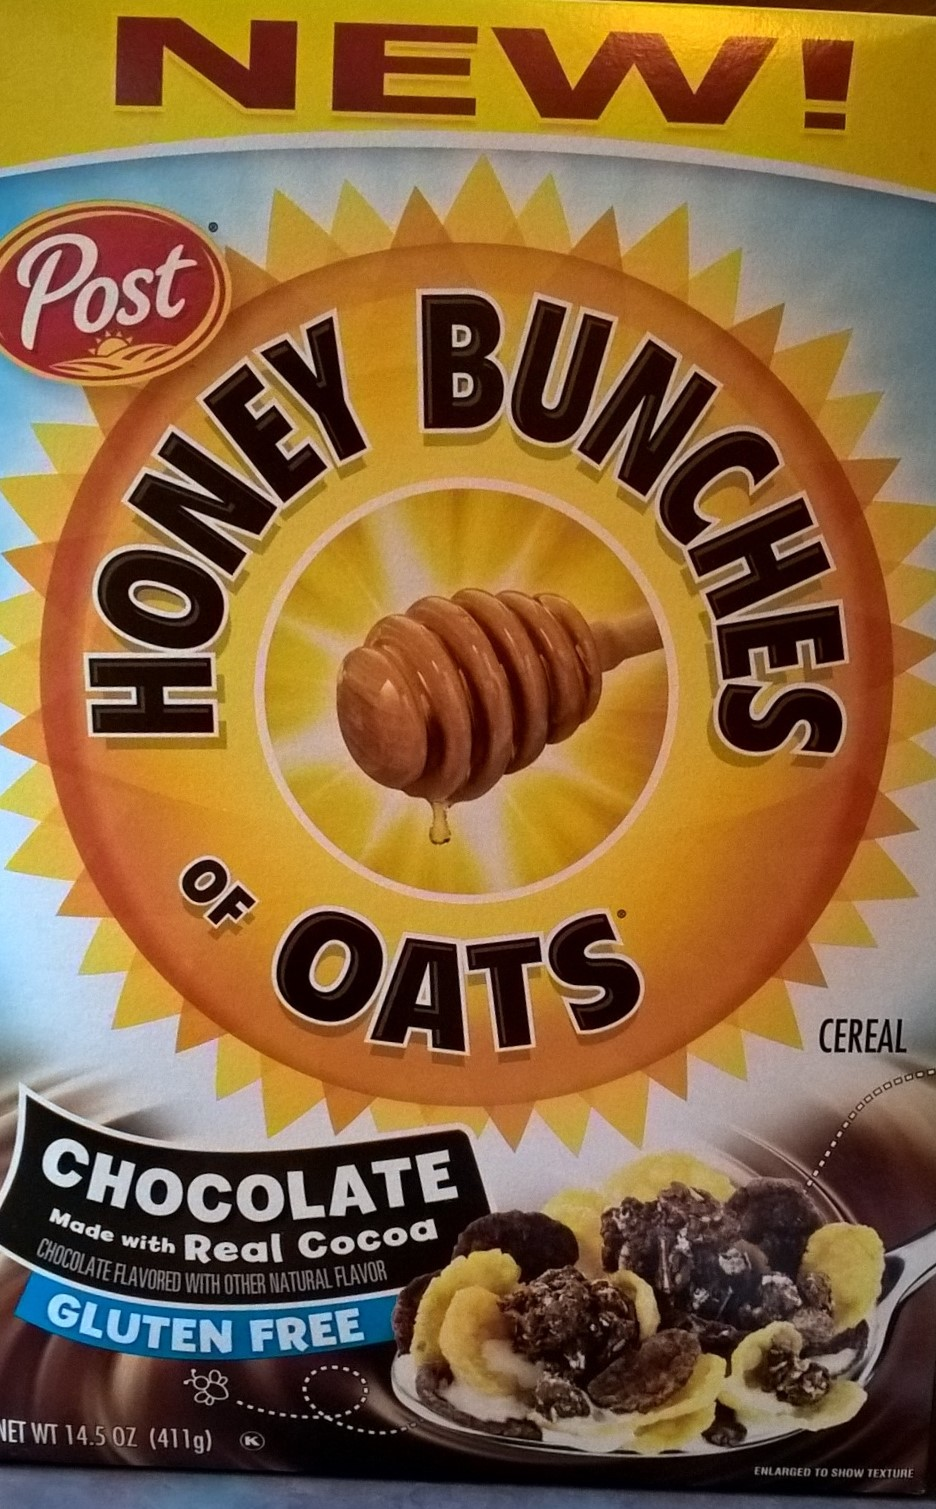 Honey Bunches of Oats – Chocolate – Gluten Free